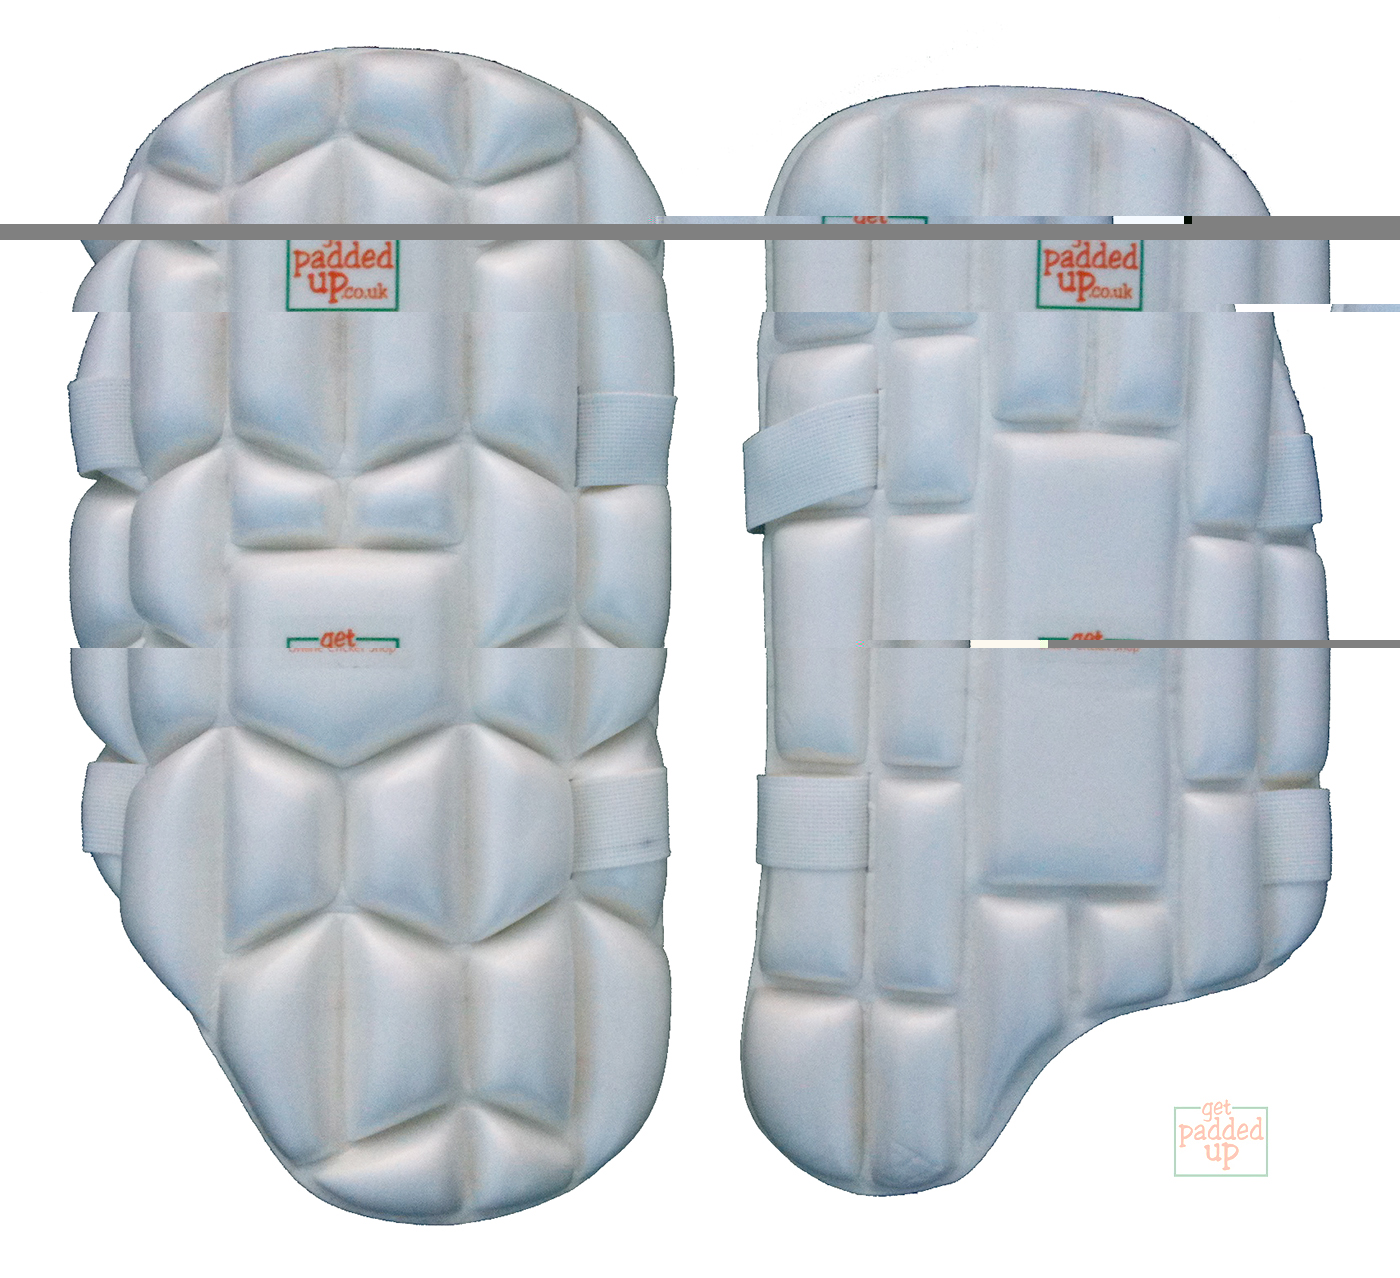 getpaddedup ULTRA BUBBLE MOLDED CRICKET THIGH PAD (YOUTH)